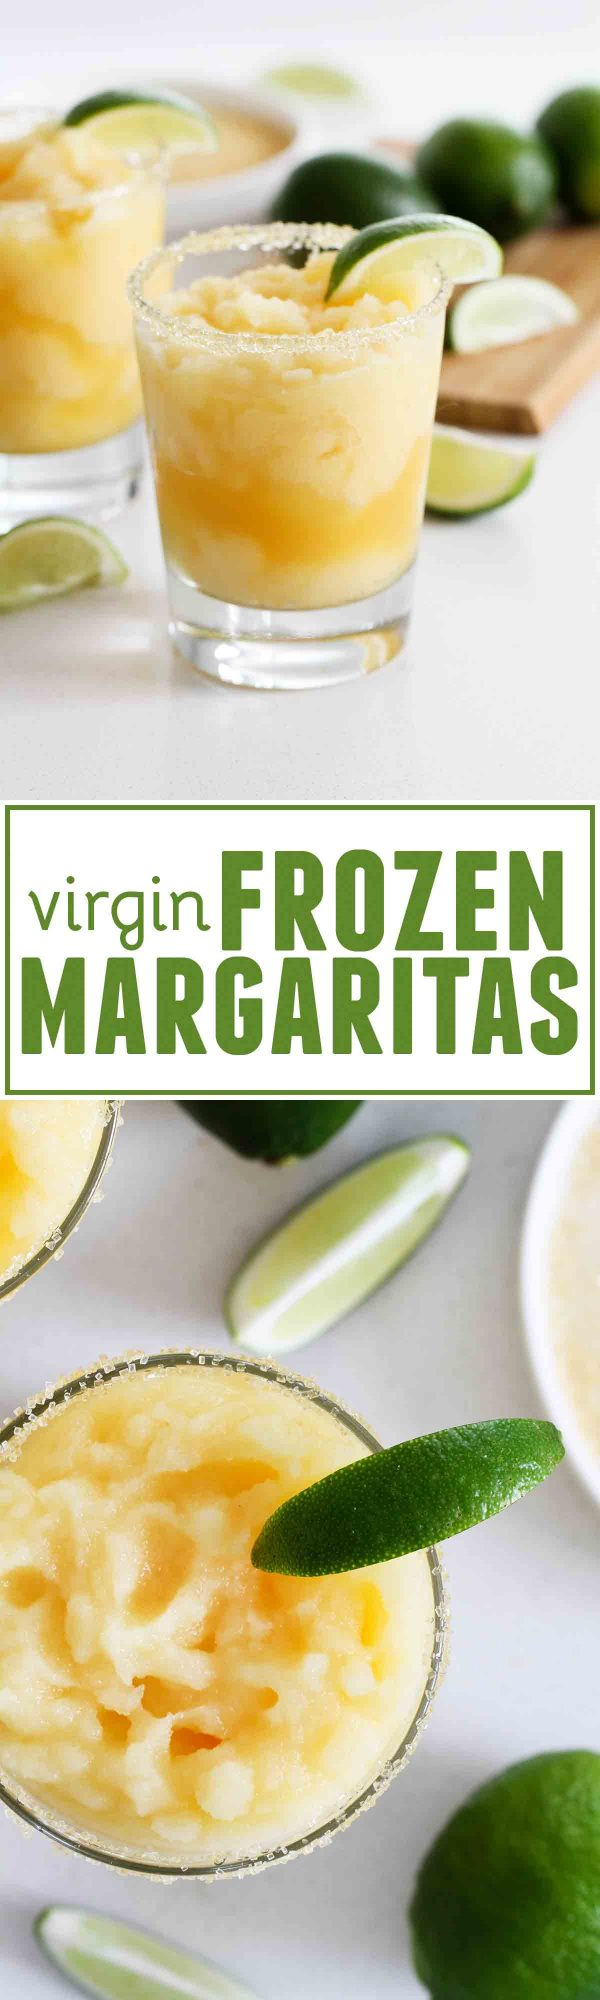 />A little bit tart, a little bit sour, and a little bit sweet, these Virgin Frozen Margaritas come together in just minutes and are super family friendly!&#8221; /></div> <p><a data-pin-do=